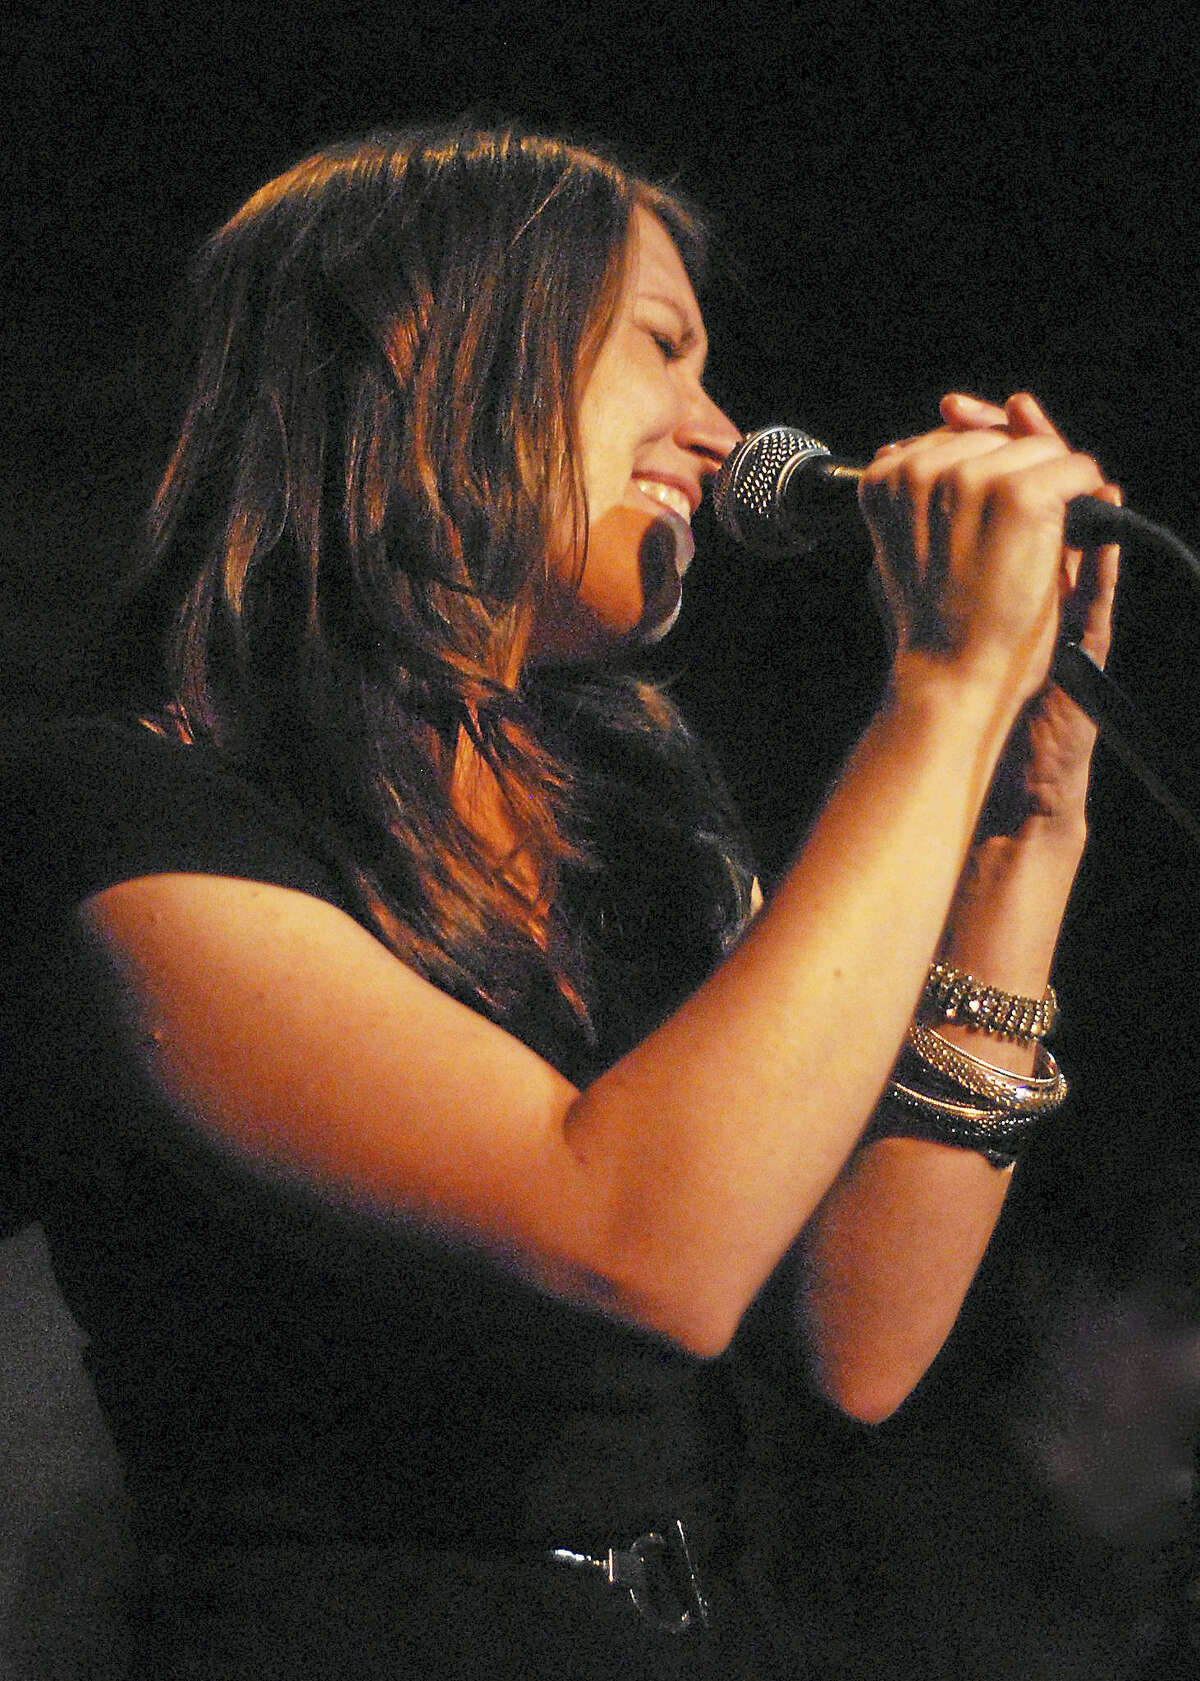 """Contributed photo HYPERLINK """"http://www.neaae.com""""New England Arts & Entertainment presents vocalist Keri Johnsrud in the fourth show of the Summer Jazz Series at the Palace Theater Poli Club on Friday Aug. 5 at 8 p.m."""